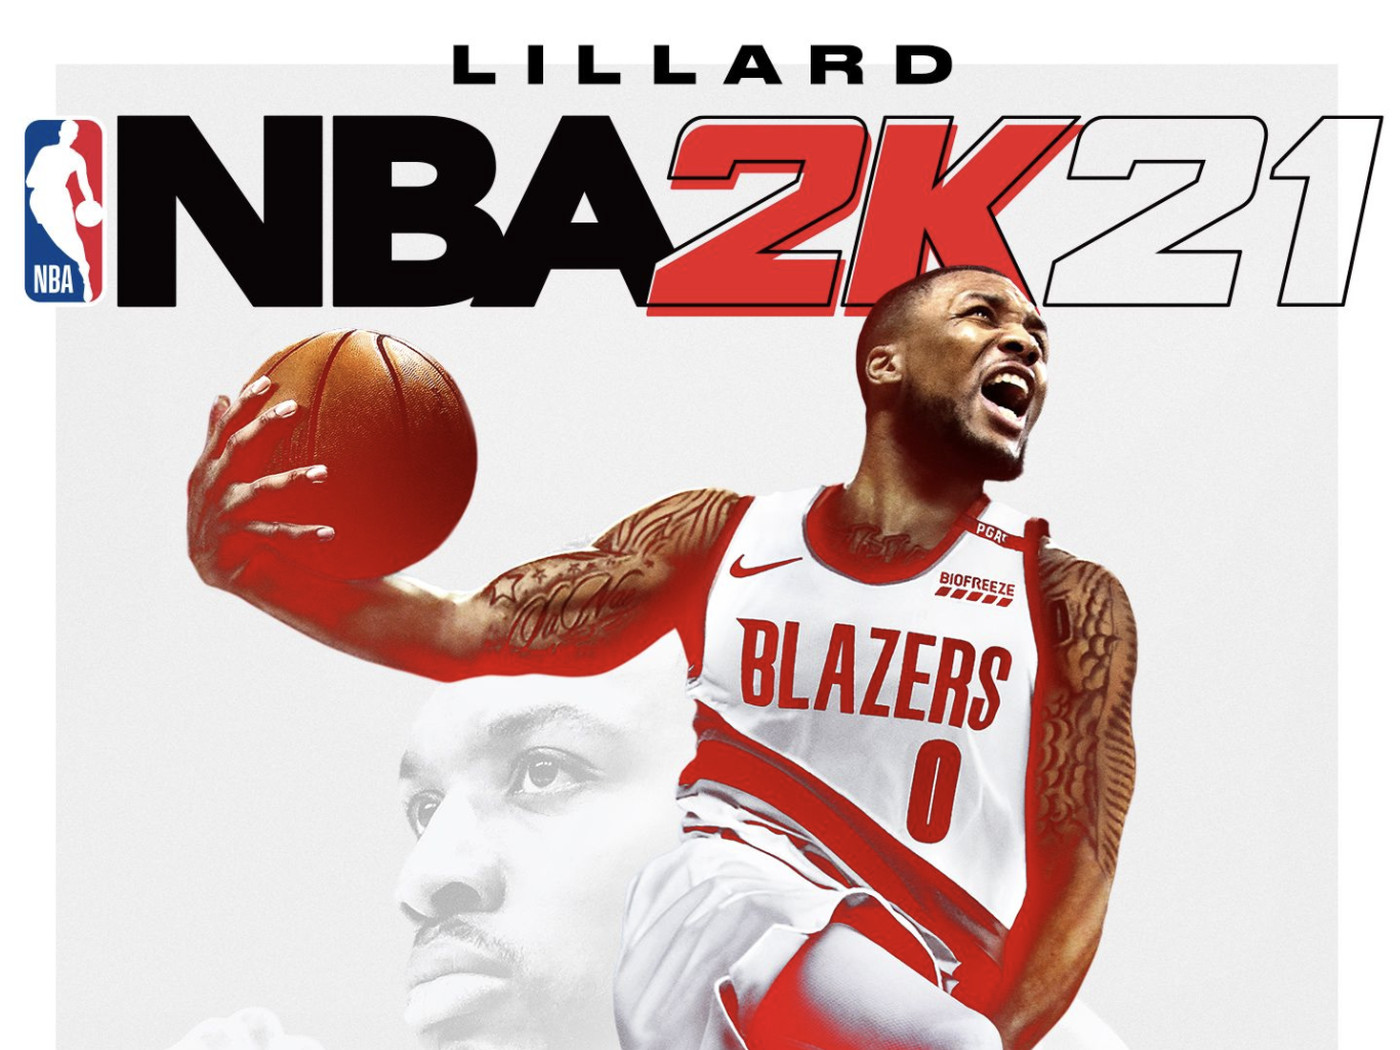 Nba 2k21 Cover Damian Lillard Picked As First Cover Athlete Deseret News